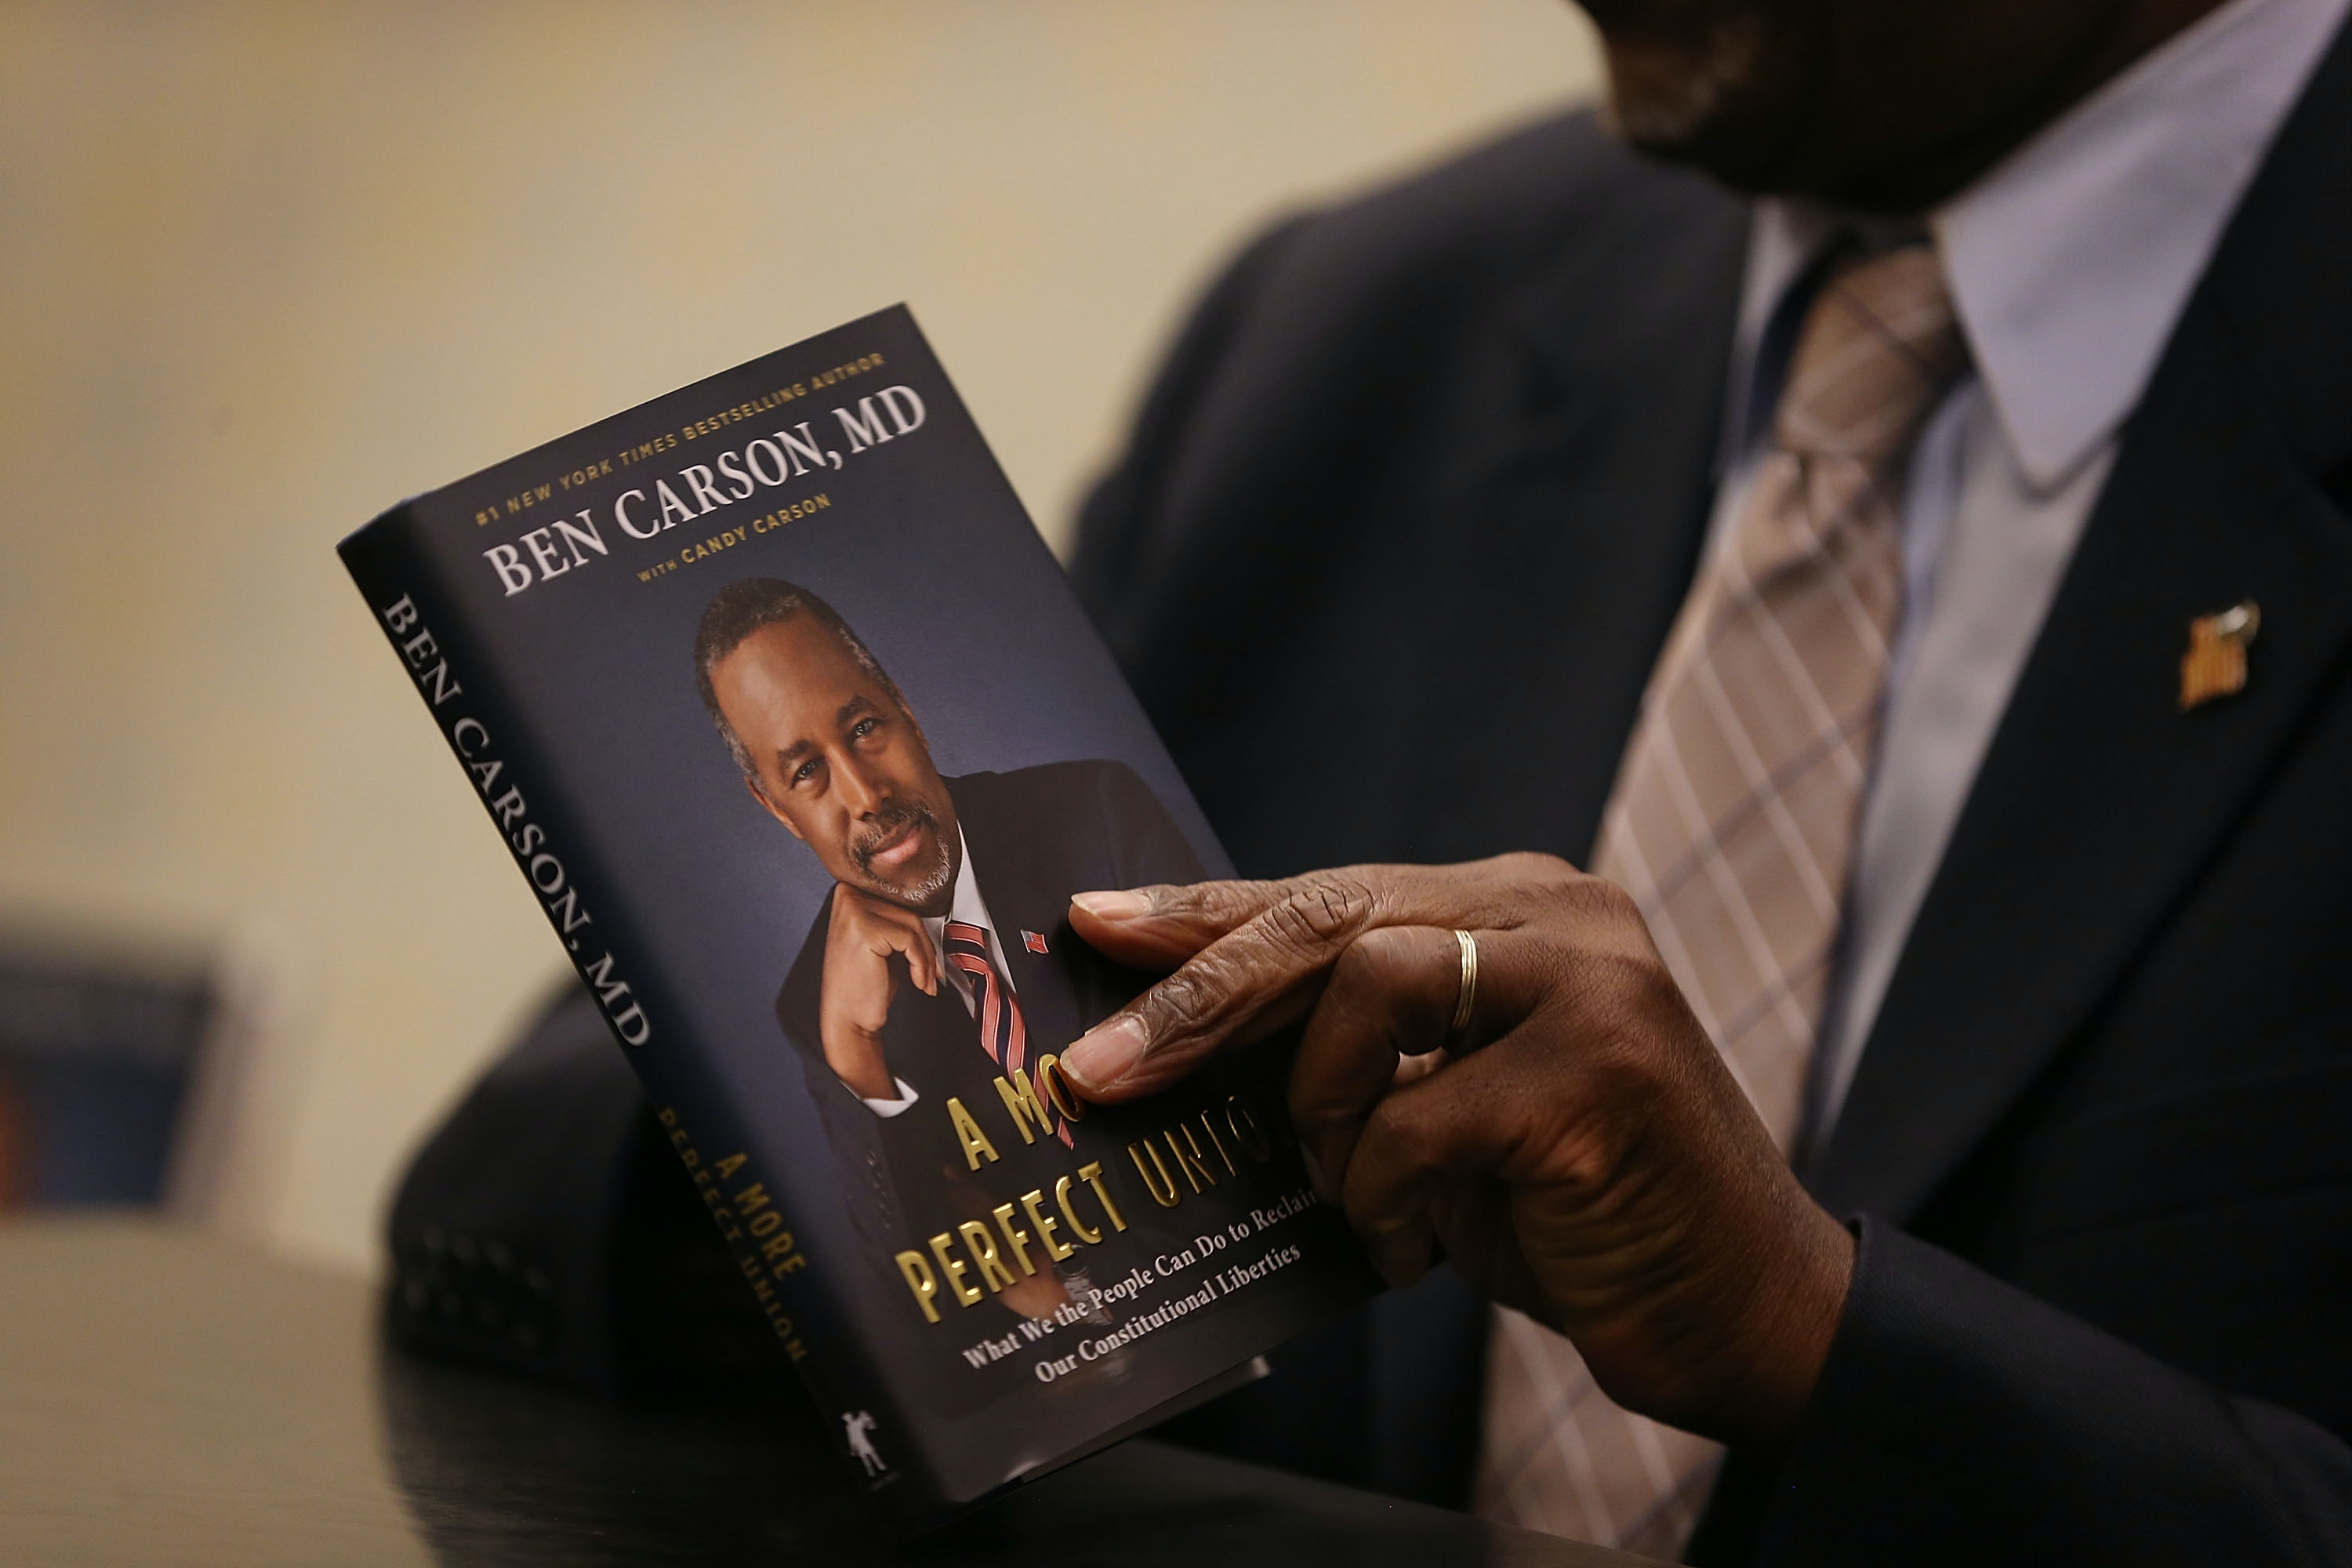 All The Ben Carson Stories From His Past That He Claims The